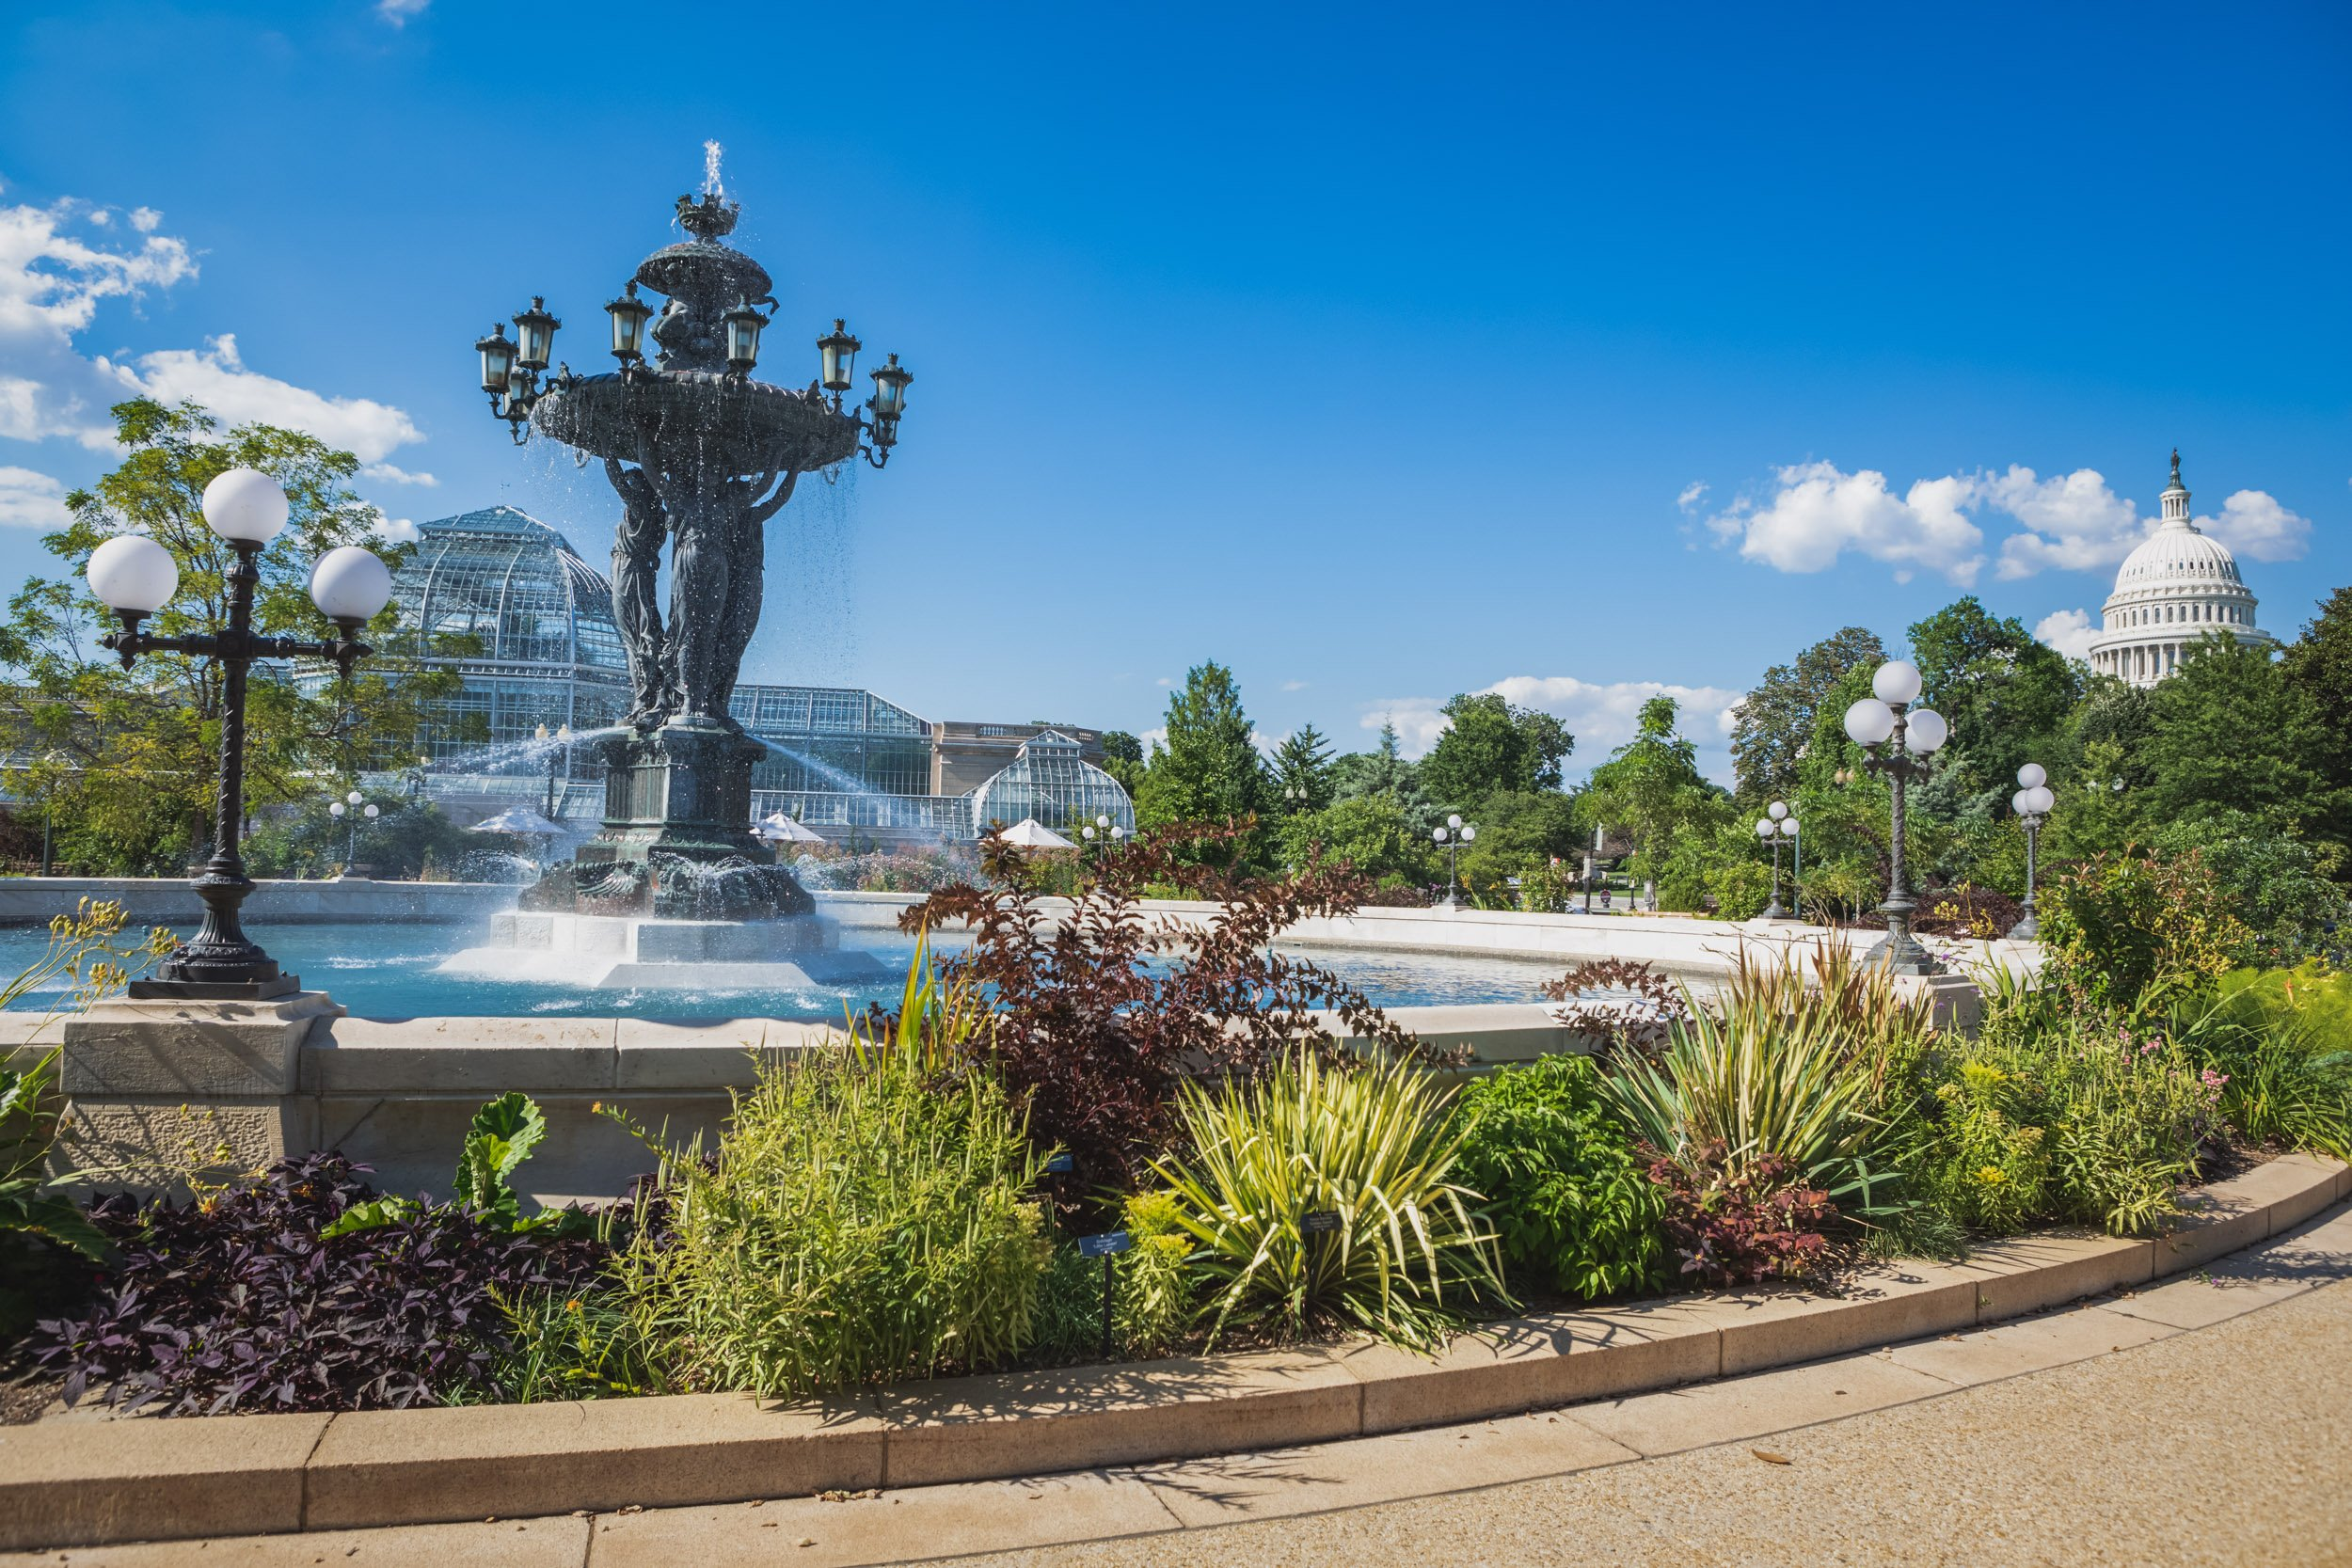 Bartholdi Fountain and Park